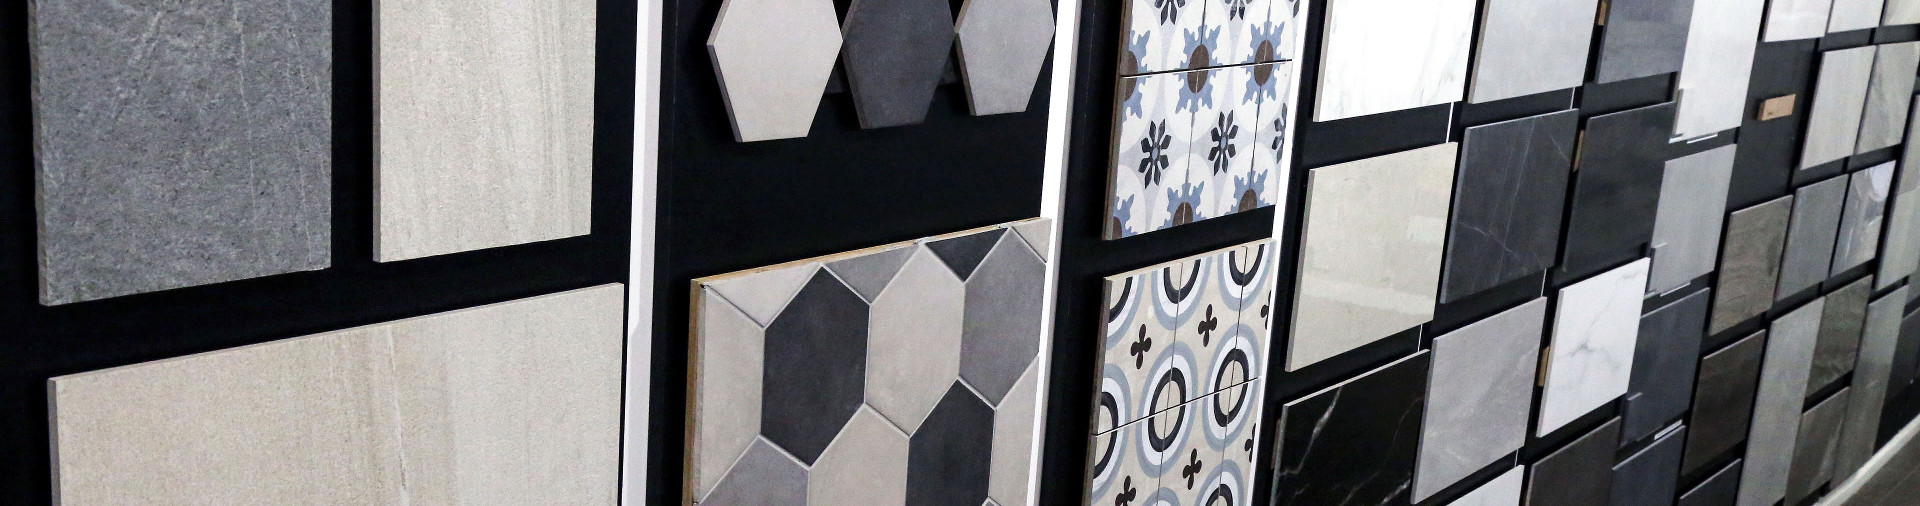 Blaxland Tiles & Bathrooms